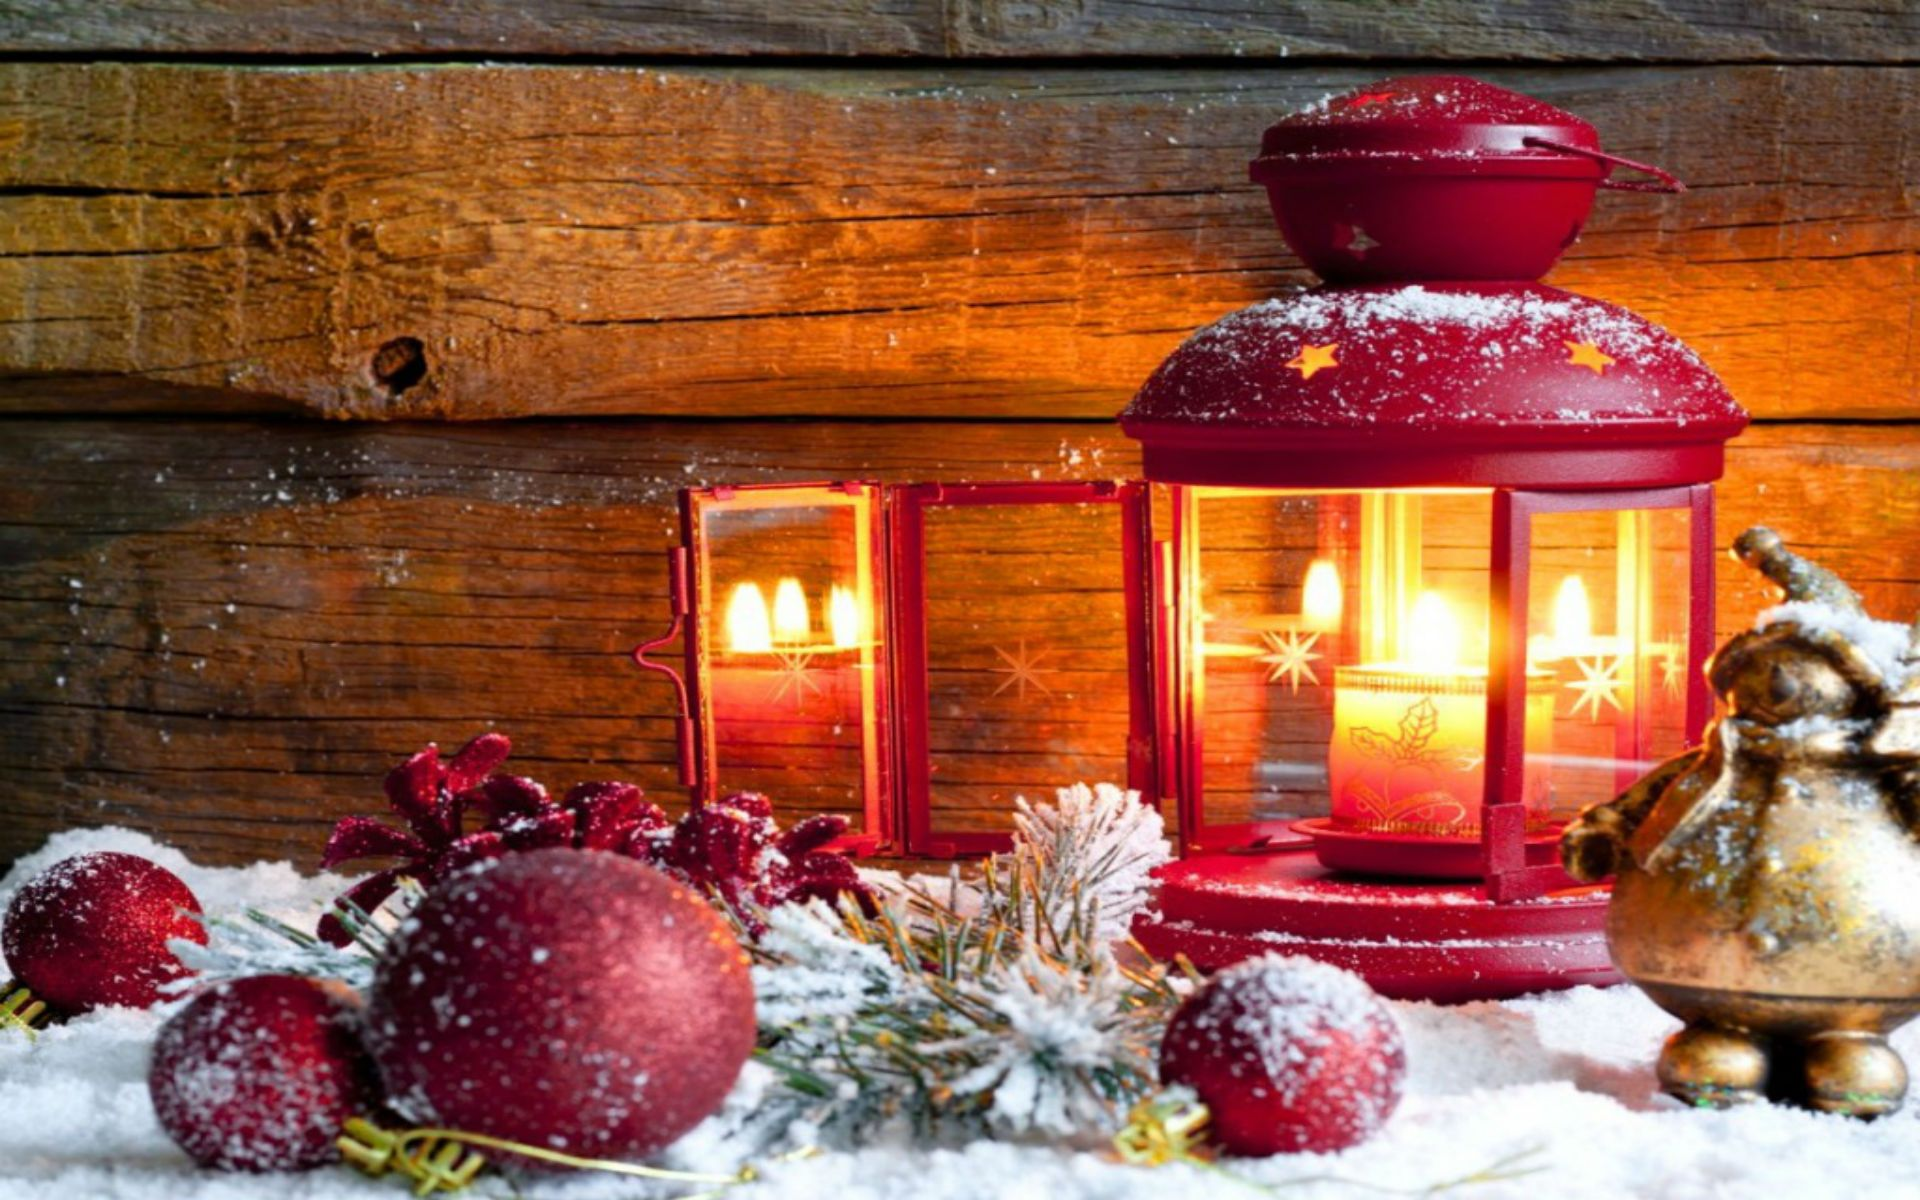 """1920x1200 Christmas desktop wallpaper ·① Download free cool backgrounds for ..."""">"""